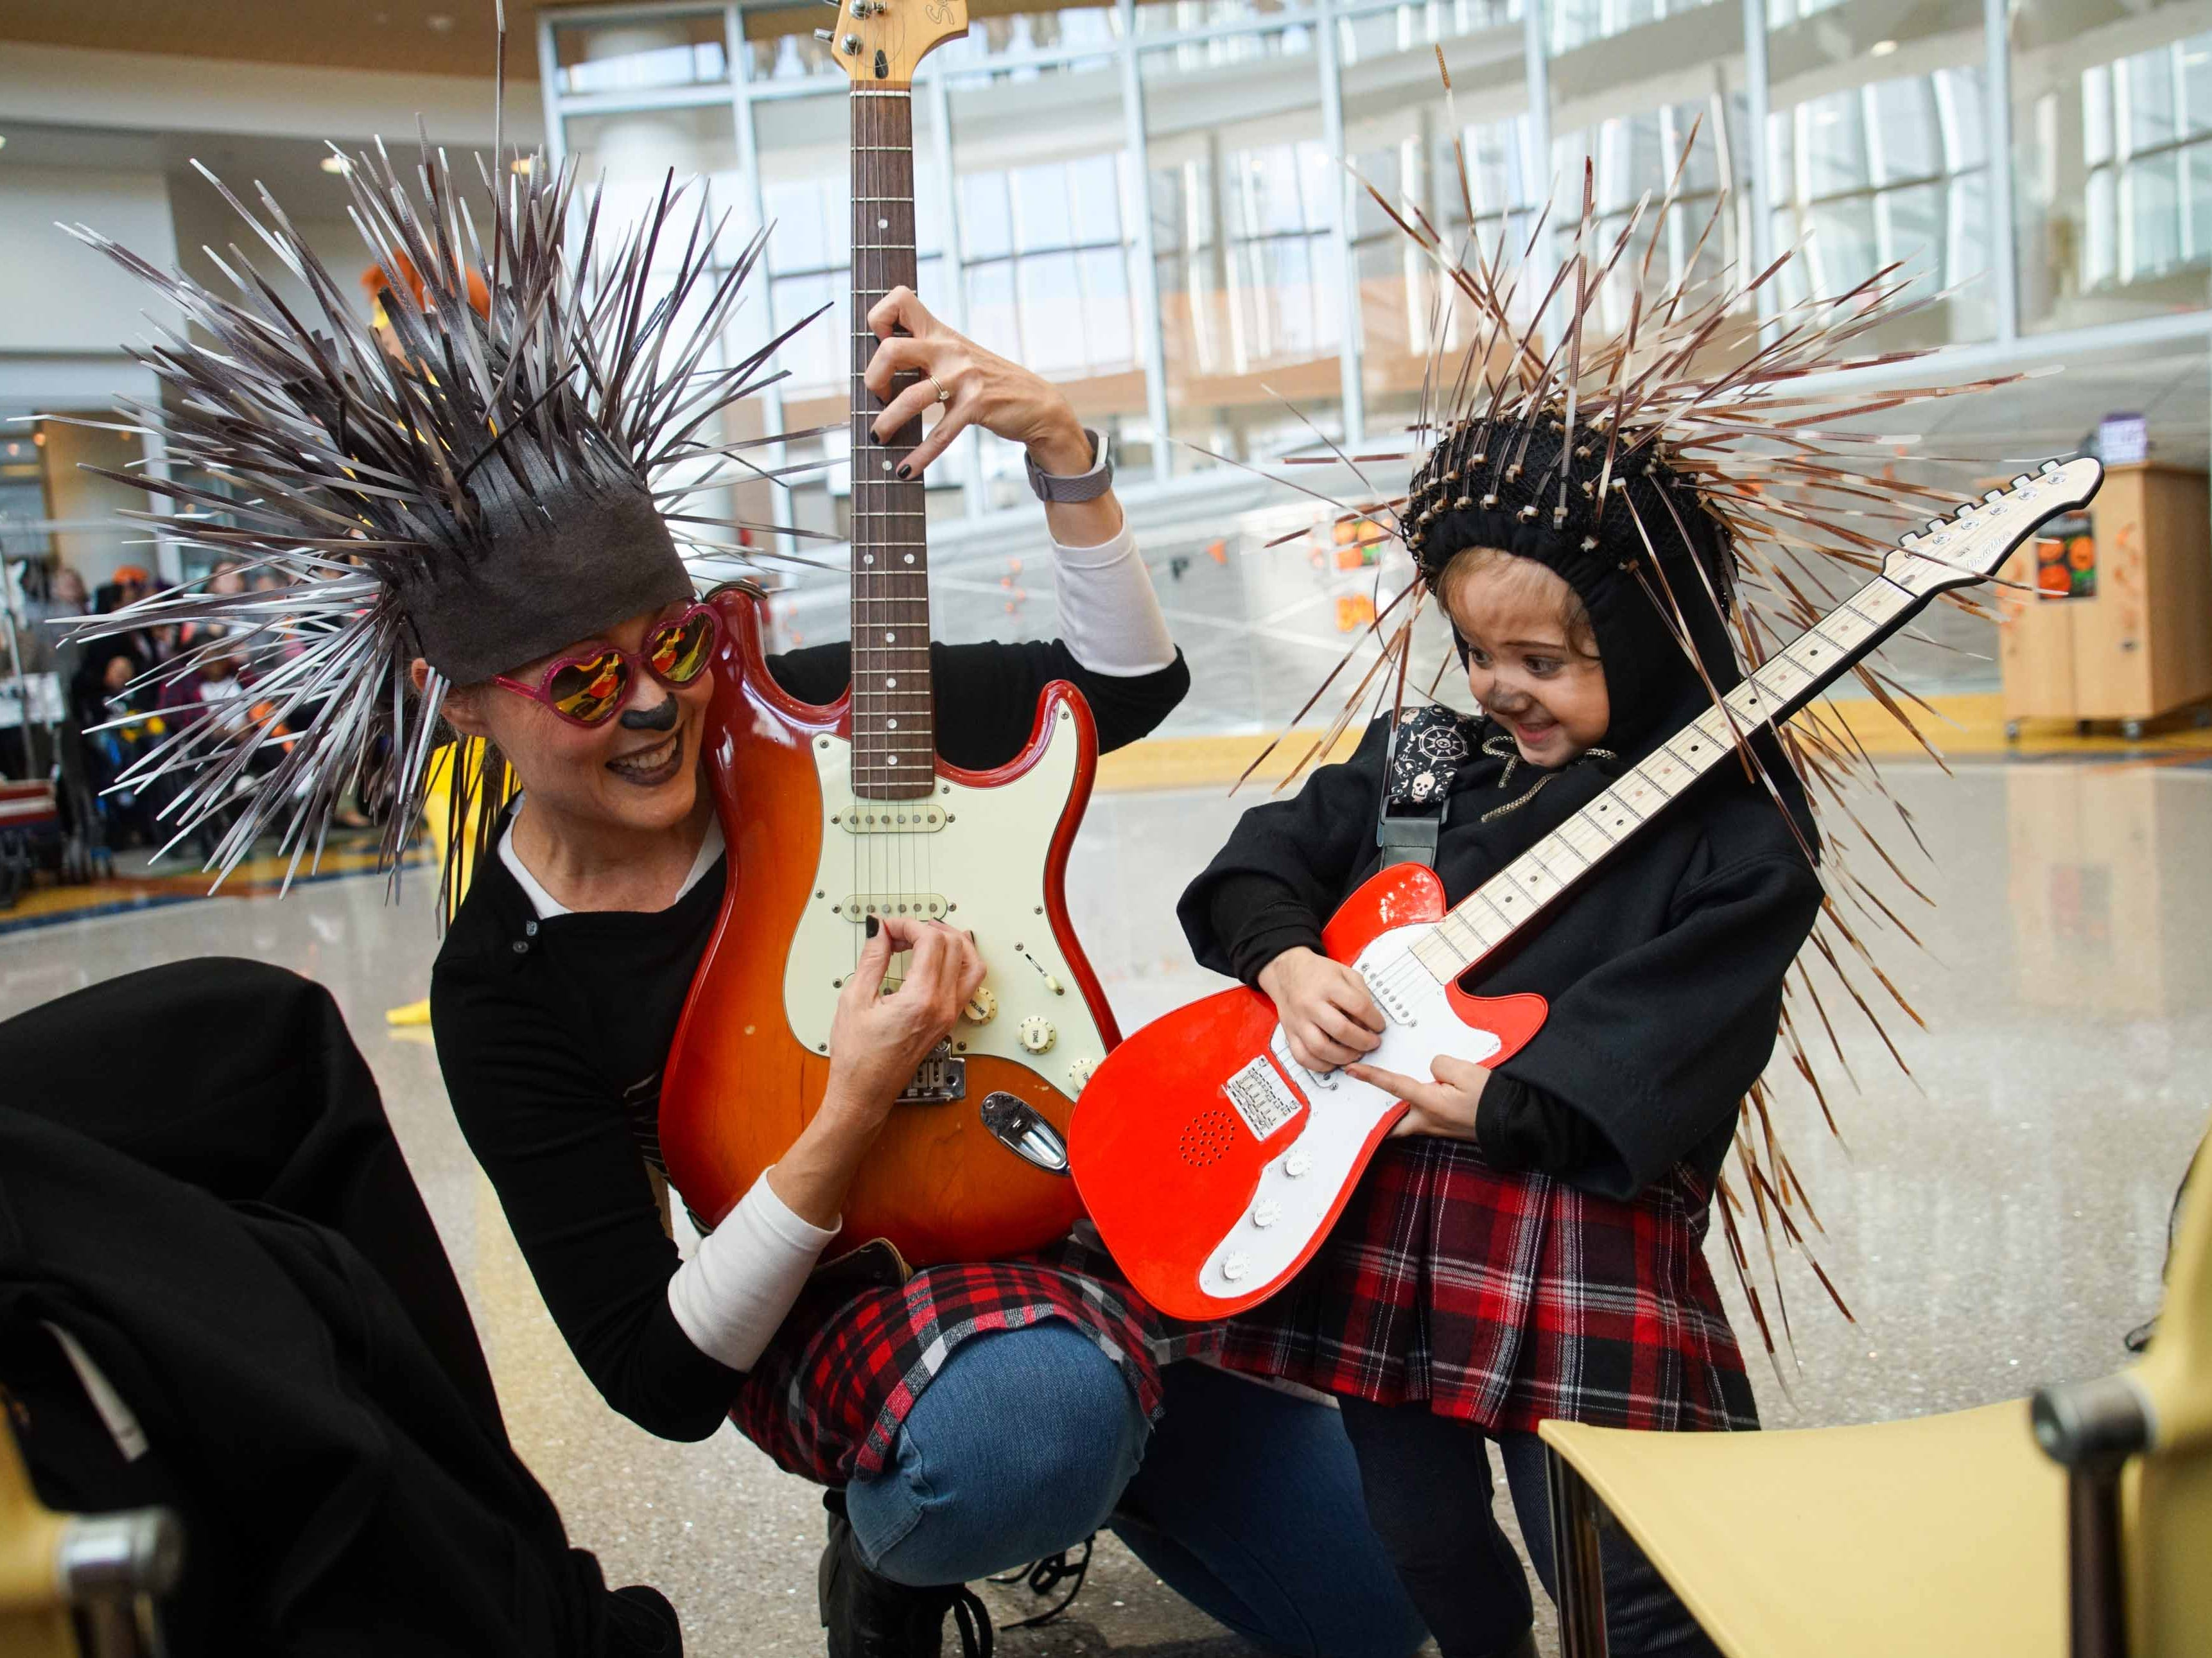 """(left to right)Dr. Sharon Gould, at Nemours/A.I. duPont Hospital for Children, plays guitar with Penelope O'Grady, 4, who both came dressed as the character Ash from the movie """"Sing"""" for the annual Halloween Lip Sync contest in the hospital's atrium on Halloween."""